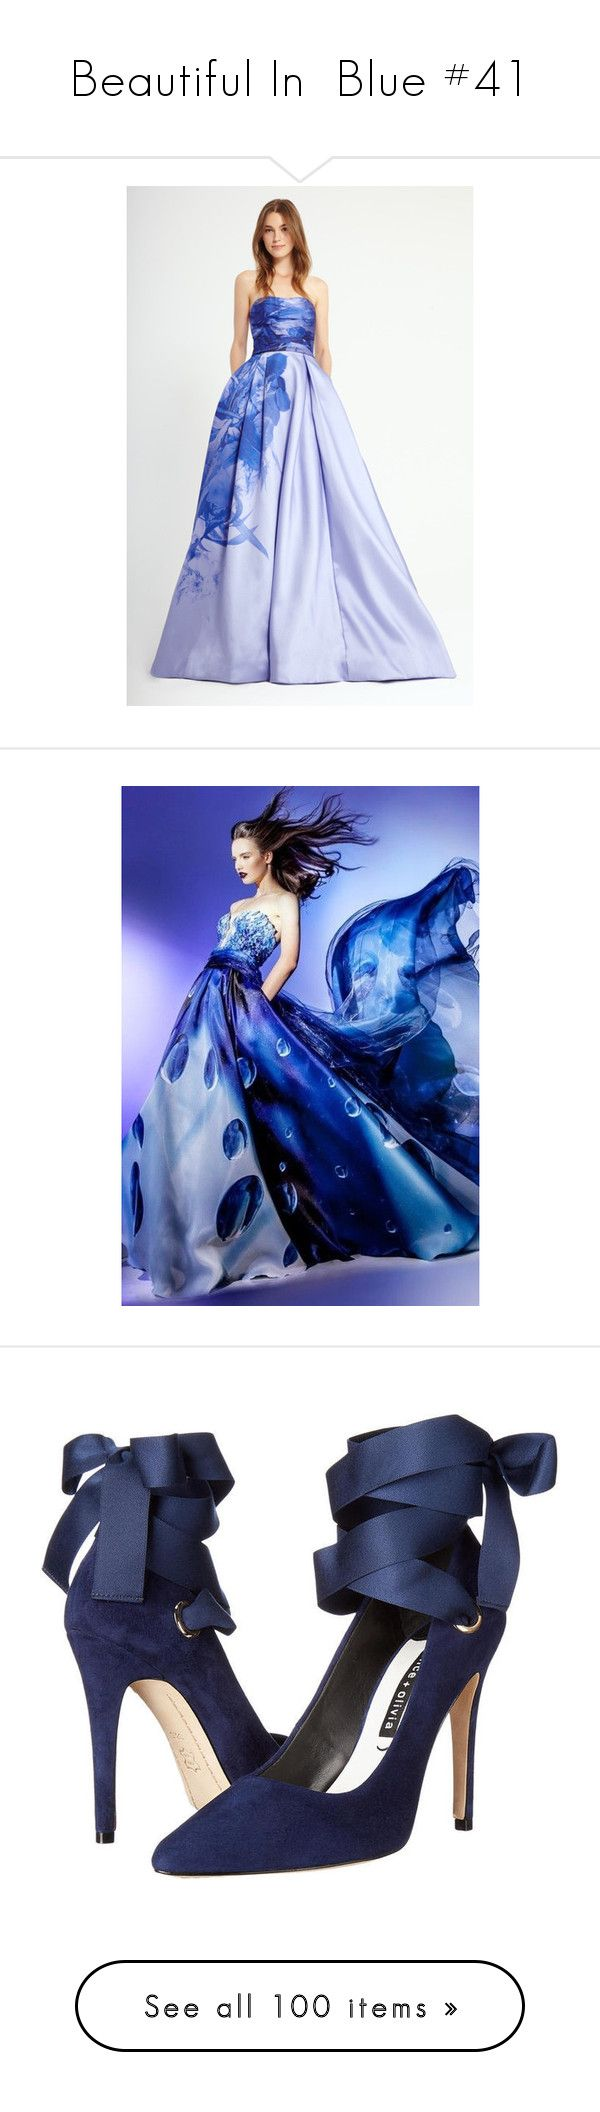 """""""Beautiful In  Blue #41"""" by rainingviolets ❤ liked on Polyvore featuring shoes, heels, scarpe, faces, dresses, home, outdoors, blue dress, electric blue dress and royal blue dress"""